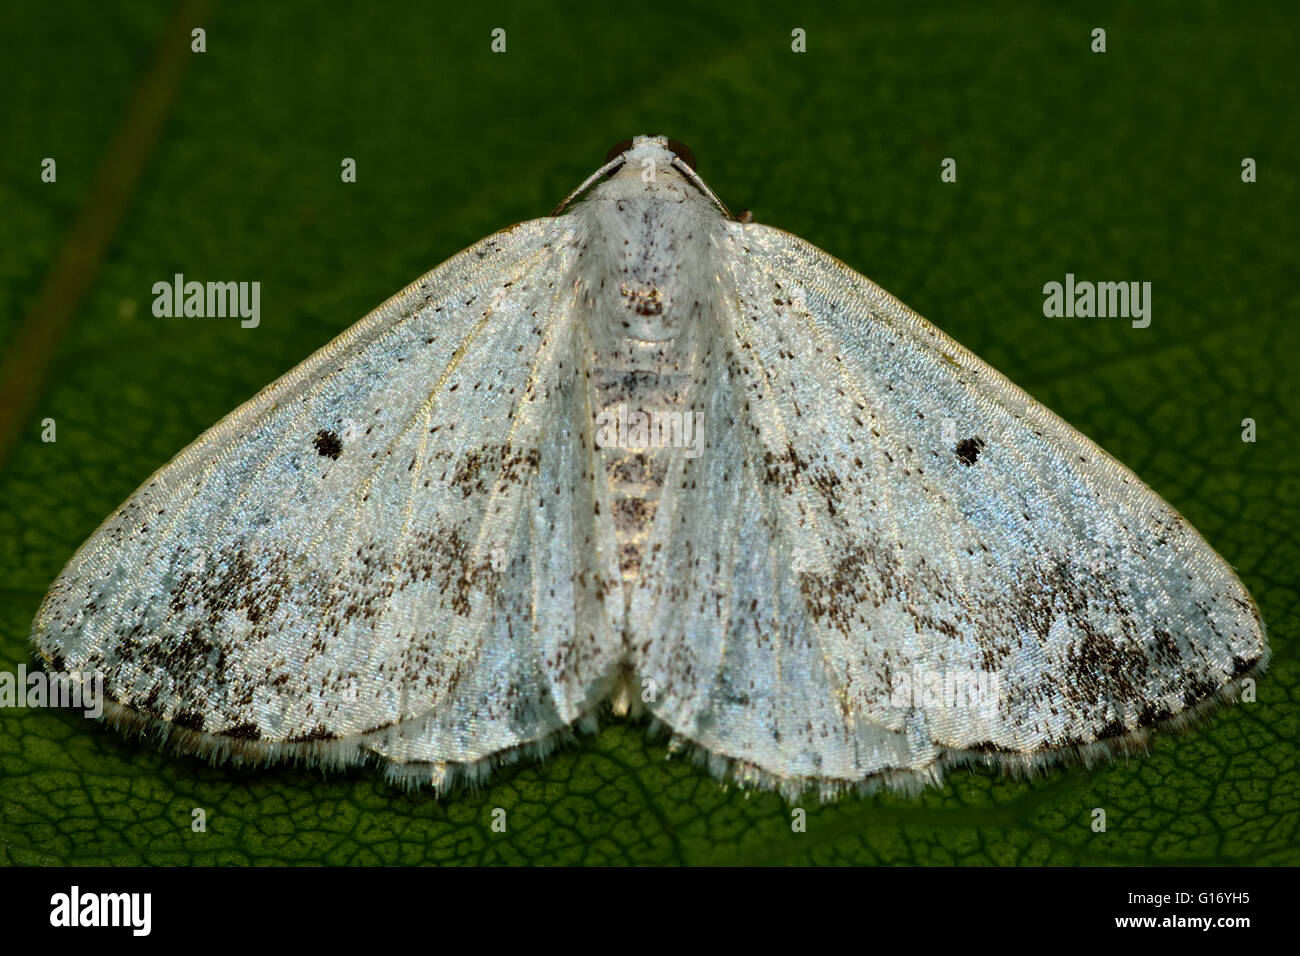 Clouded silver moth (Lomographa temerata) from above. British insect in the family Geometridae, the geometer moths - Stock Image